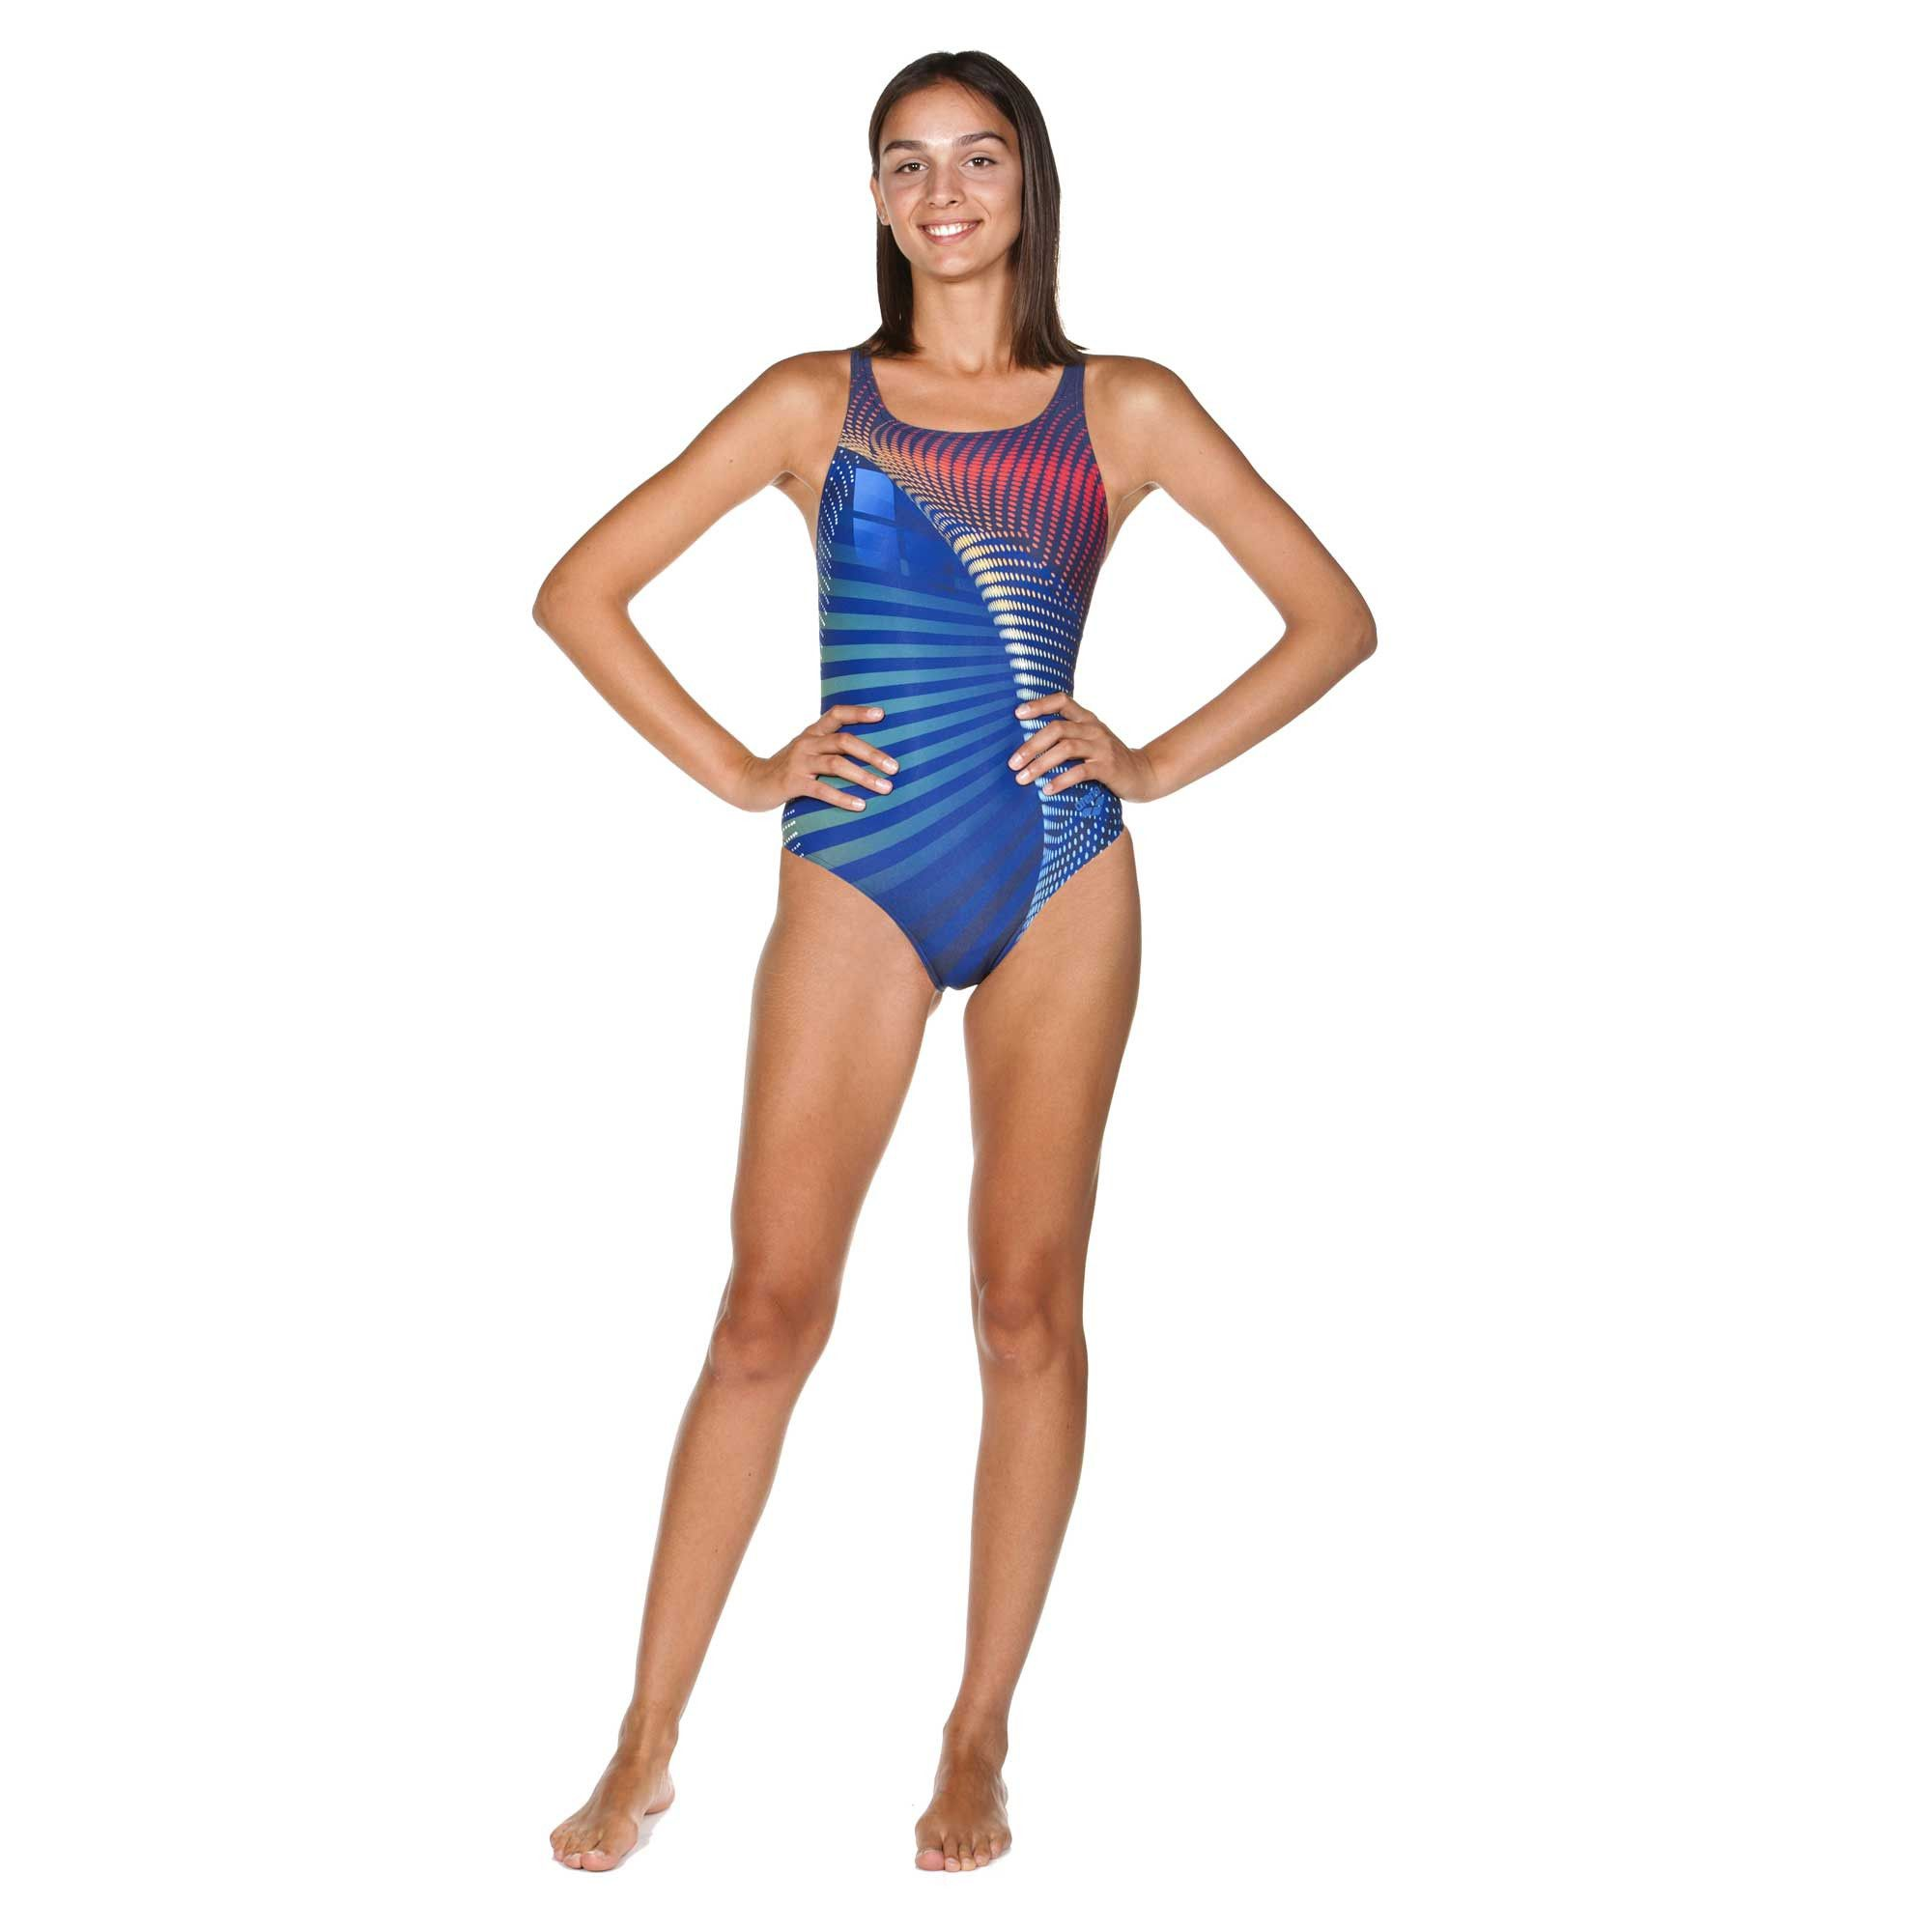 ab4fc6447c04 Women's Arena One Ares One Piece | arena Training Swimsuits | One ...